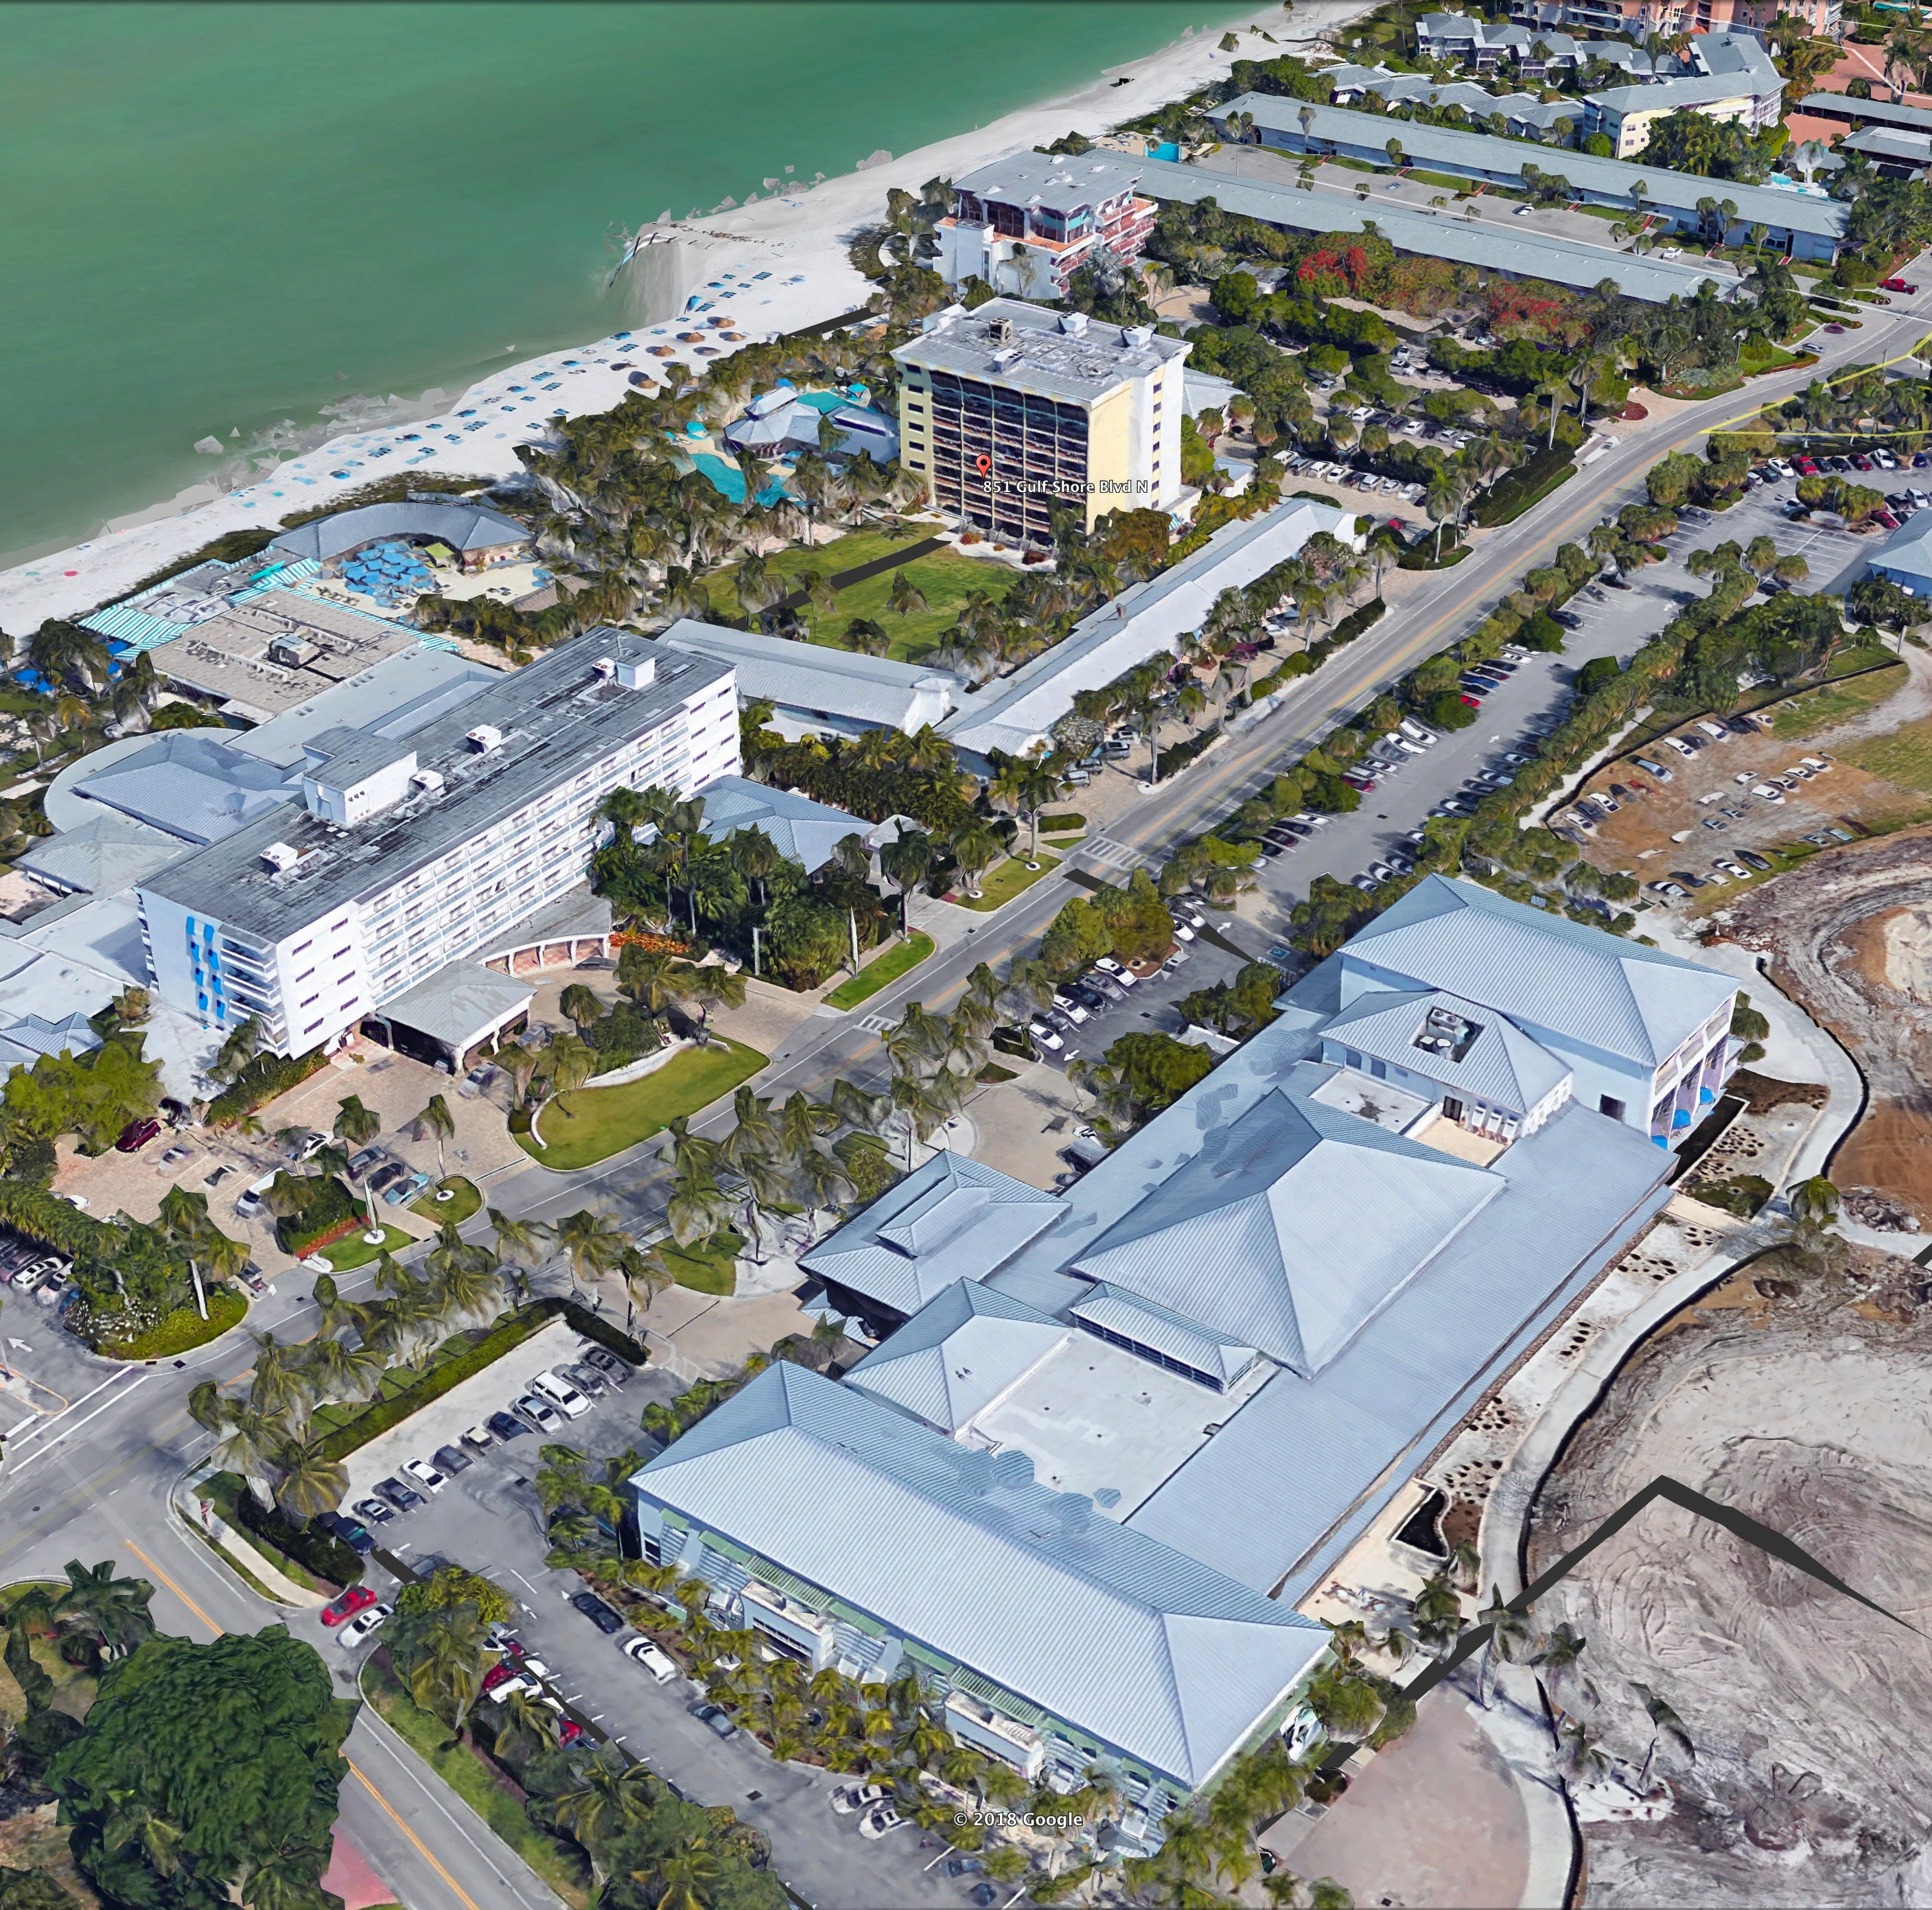 Naples Beach Hotel & Golf Club redevelopment plan approved by planning board